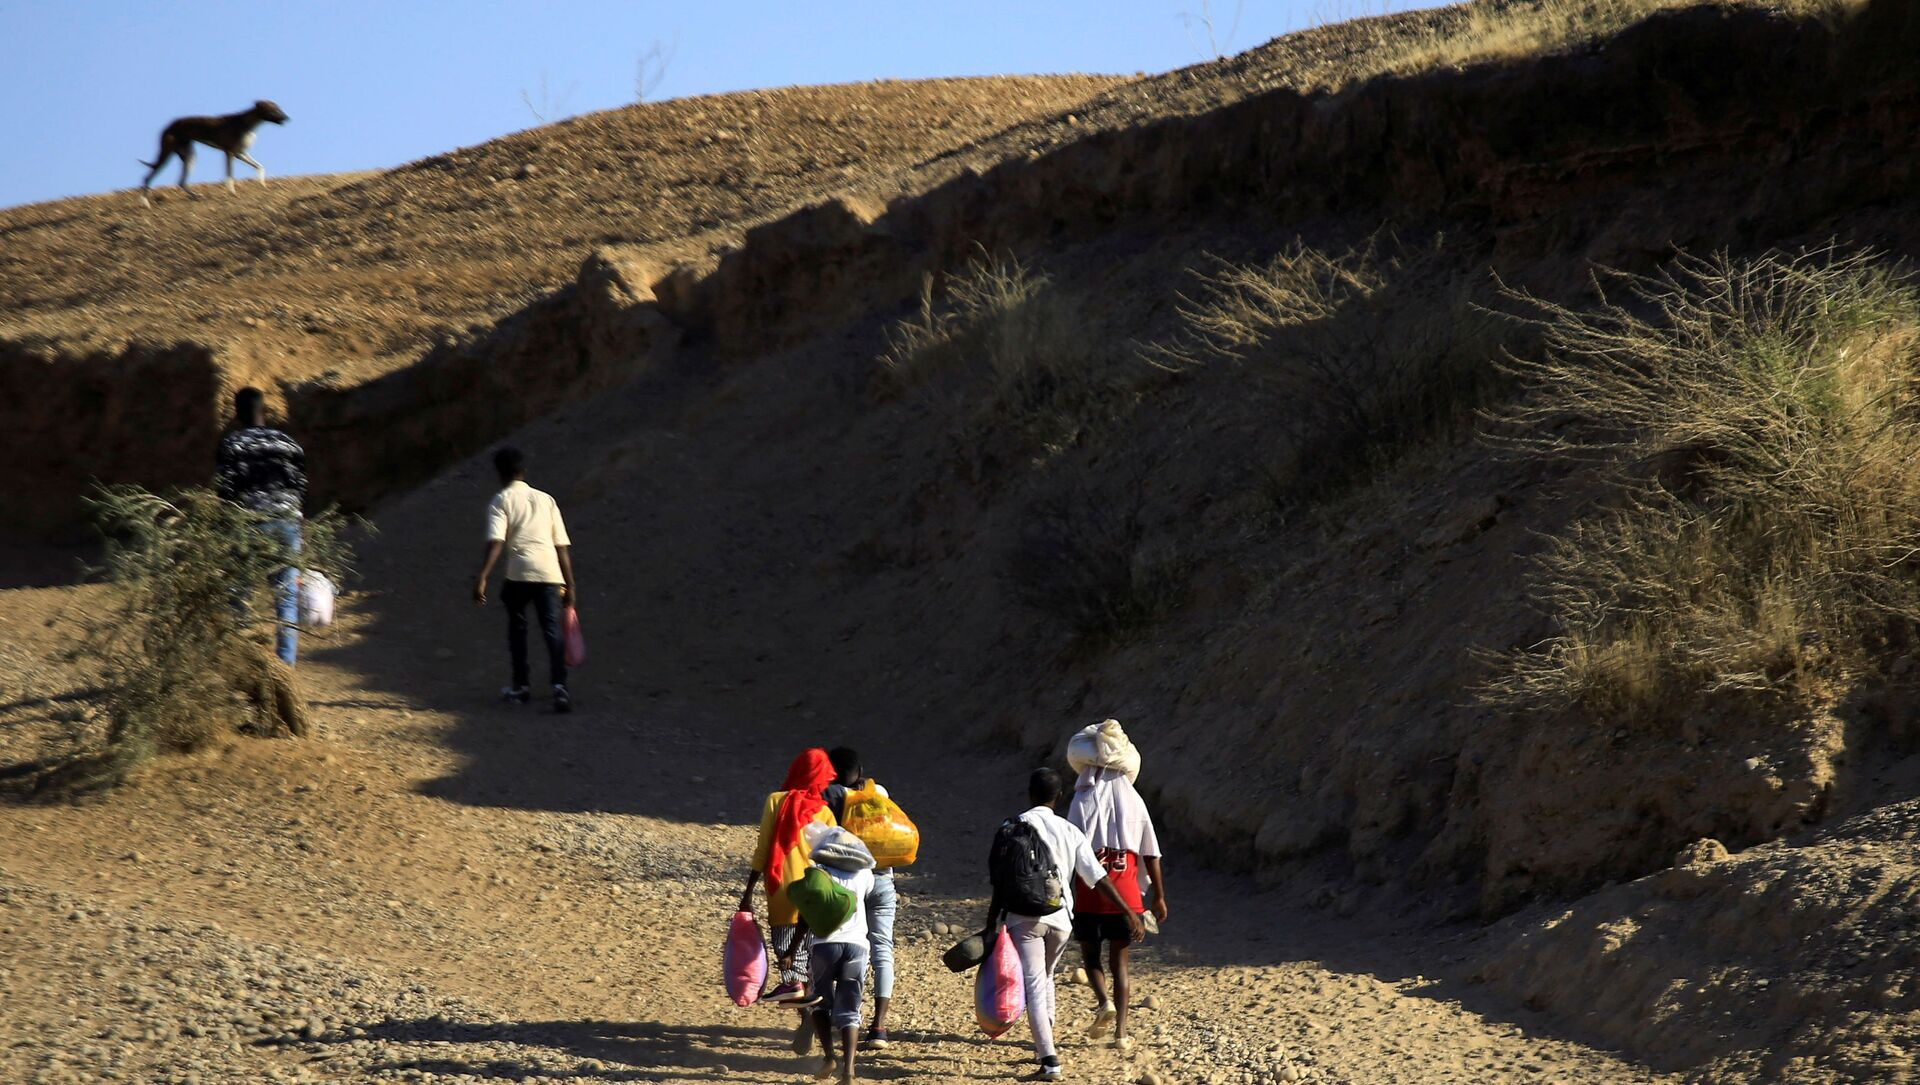 Ethiopians, who fled the ongoing fighting in Tigray region, carry their belongings after crossing the Setit River on the Sudan-Ethiopia border, in the eastern Kassala state, Sudan December 16, 2020. REUTERS/Mohamed Nureldin Abdallah/File Photo - Sputnik International, 1920, 24.05.2021